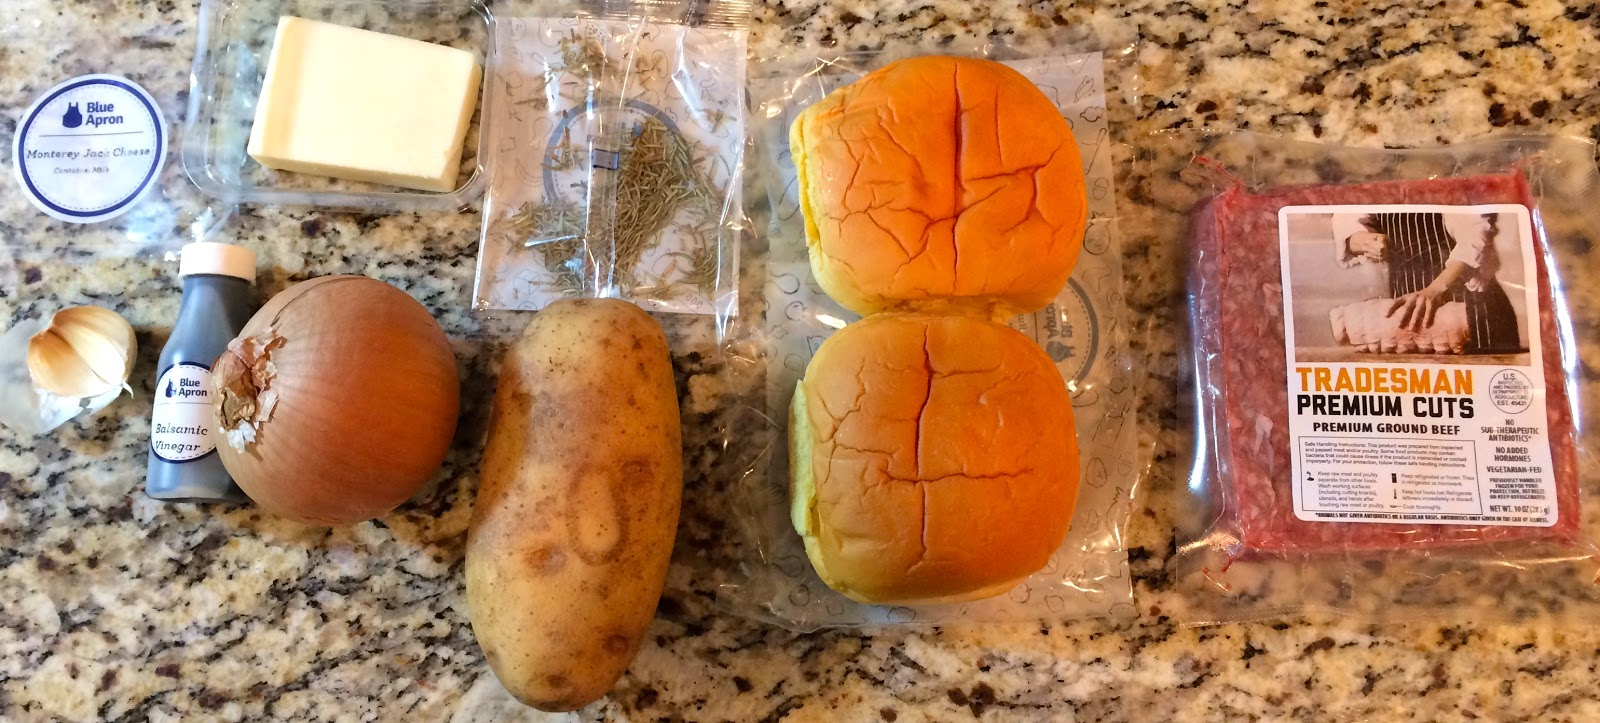 Blue apron qvc - Balsamic Glazed Onion Cheeseburgers With Roasted Potato Wedges